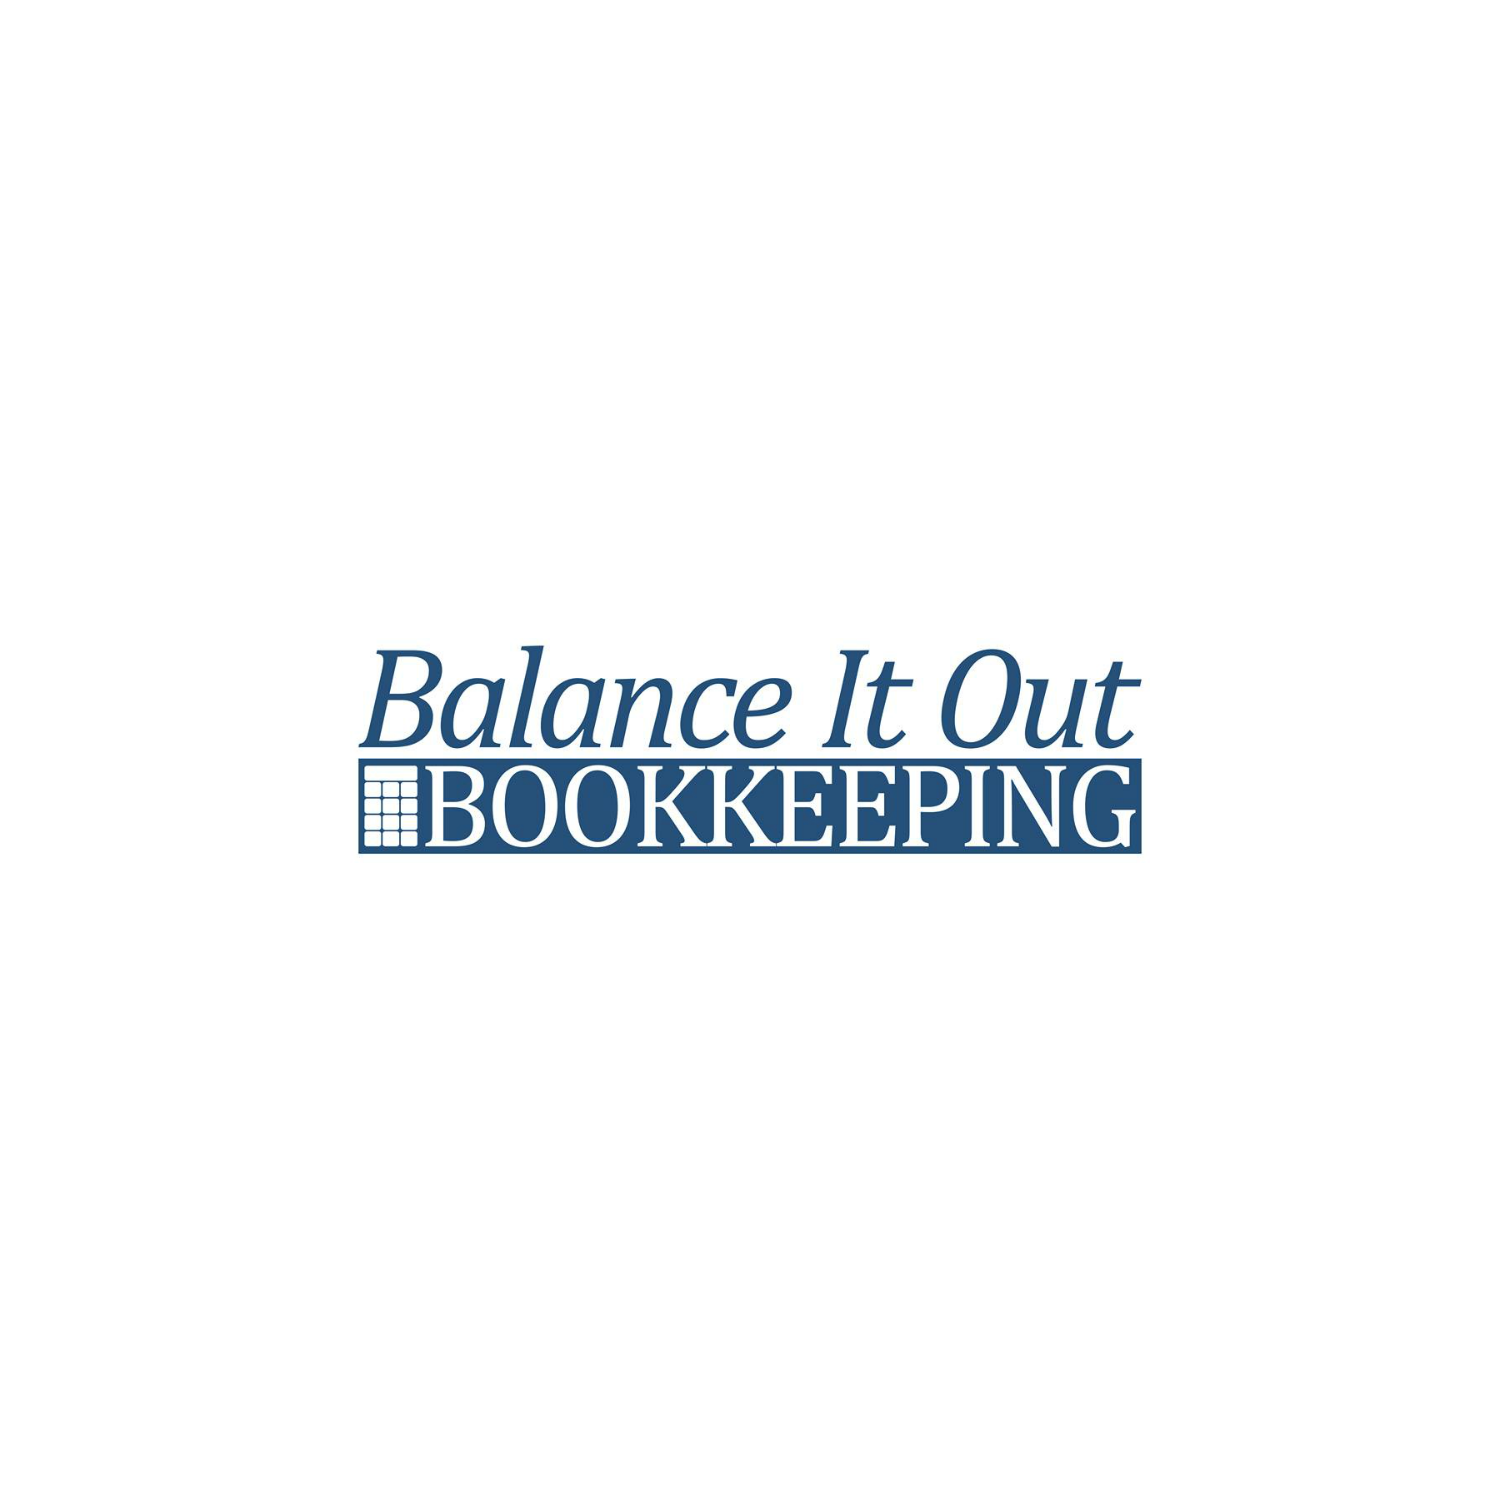 Balance It Out Bookkeeping logo